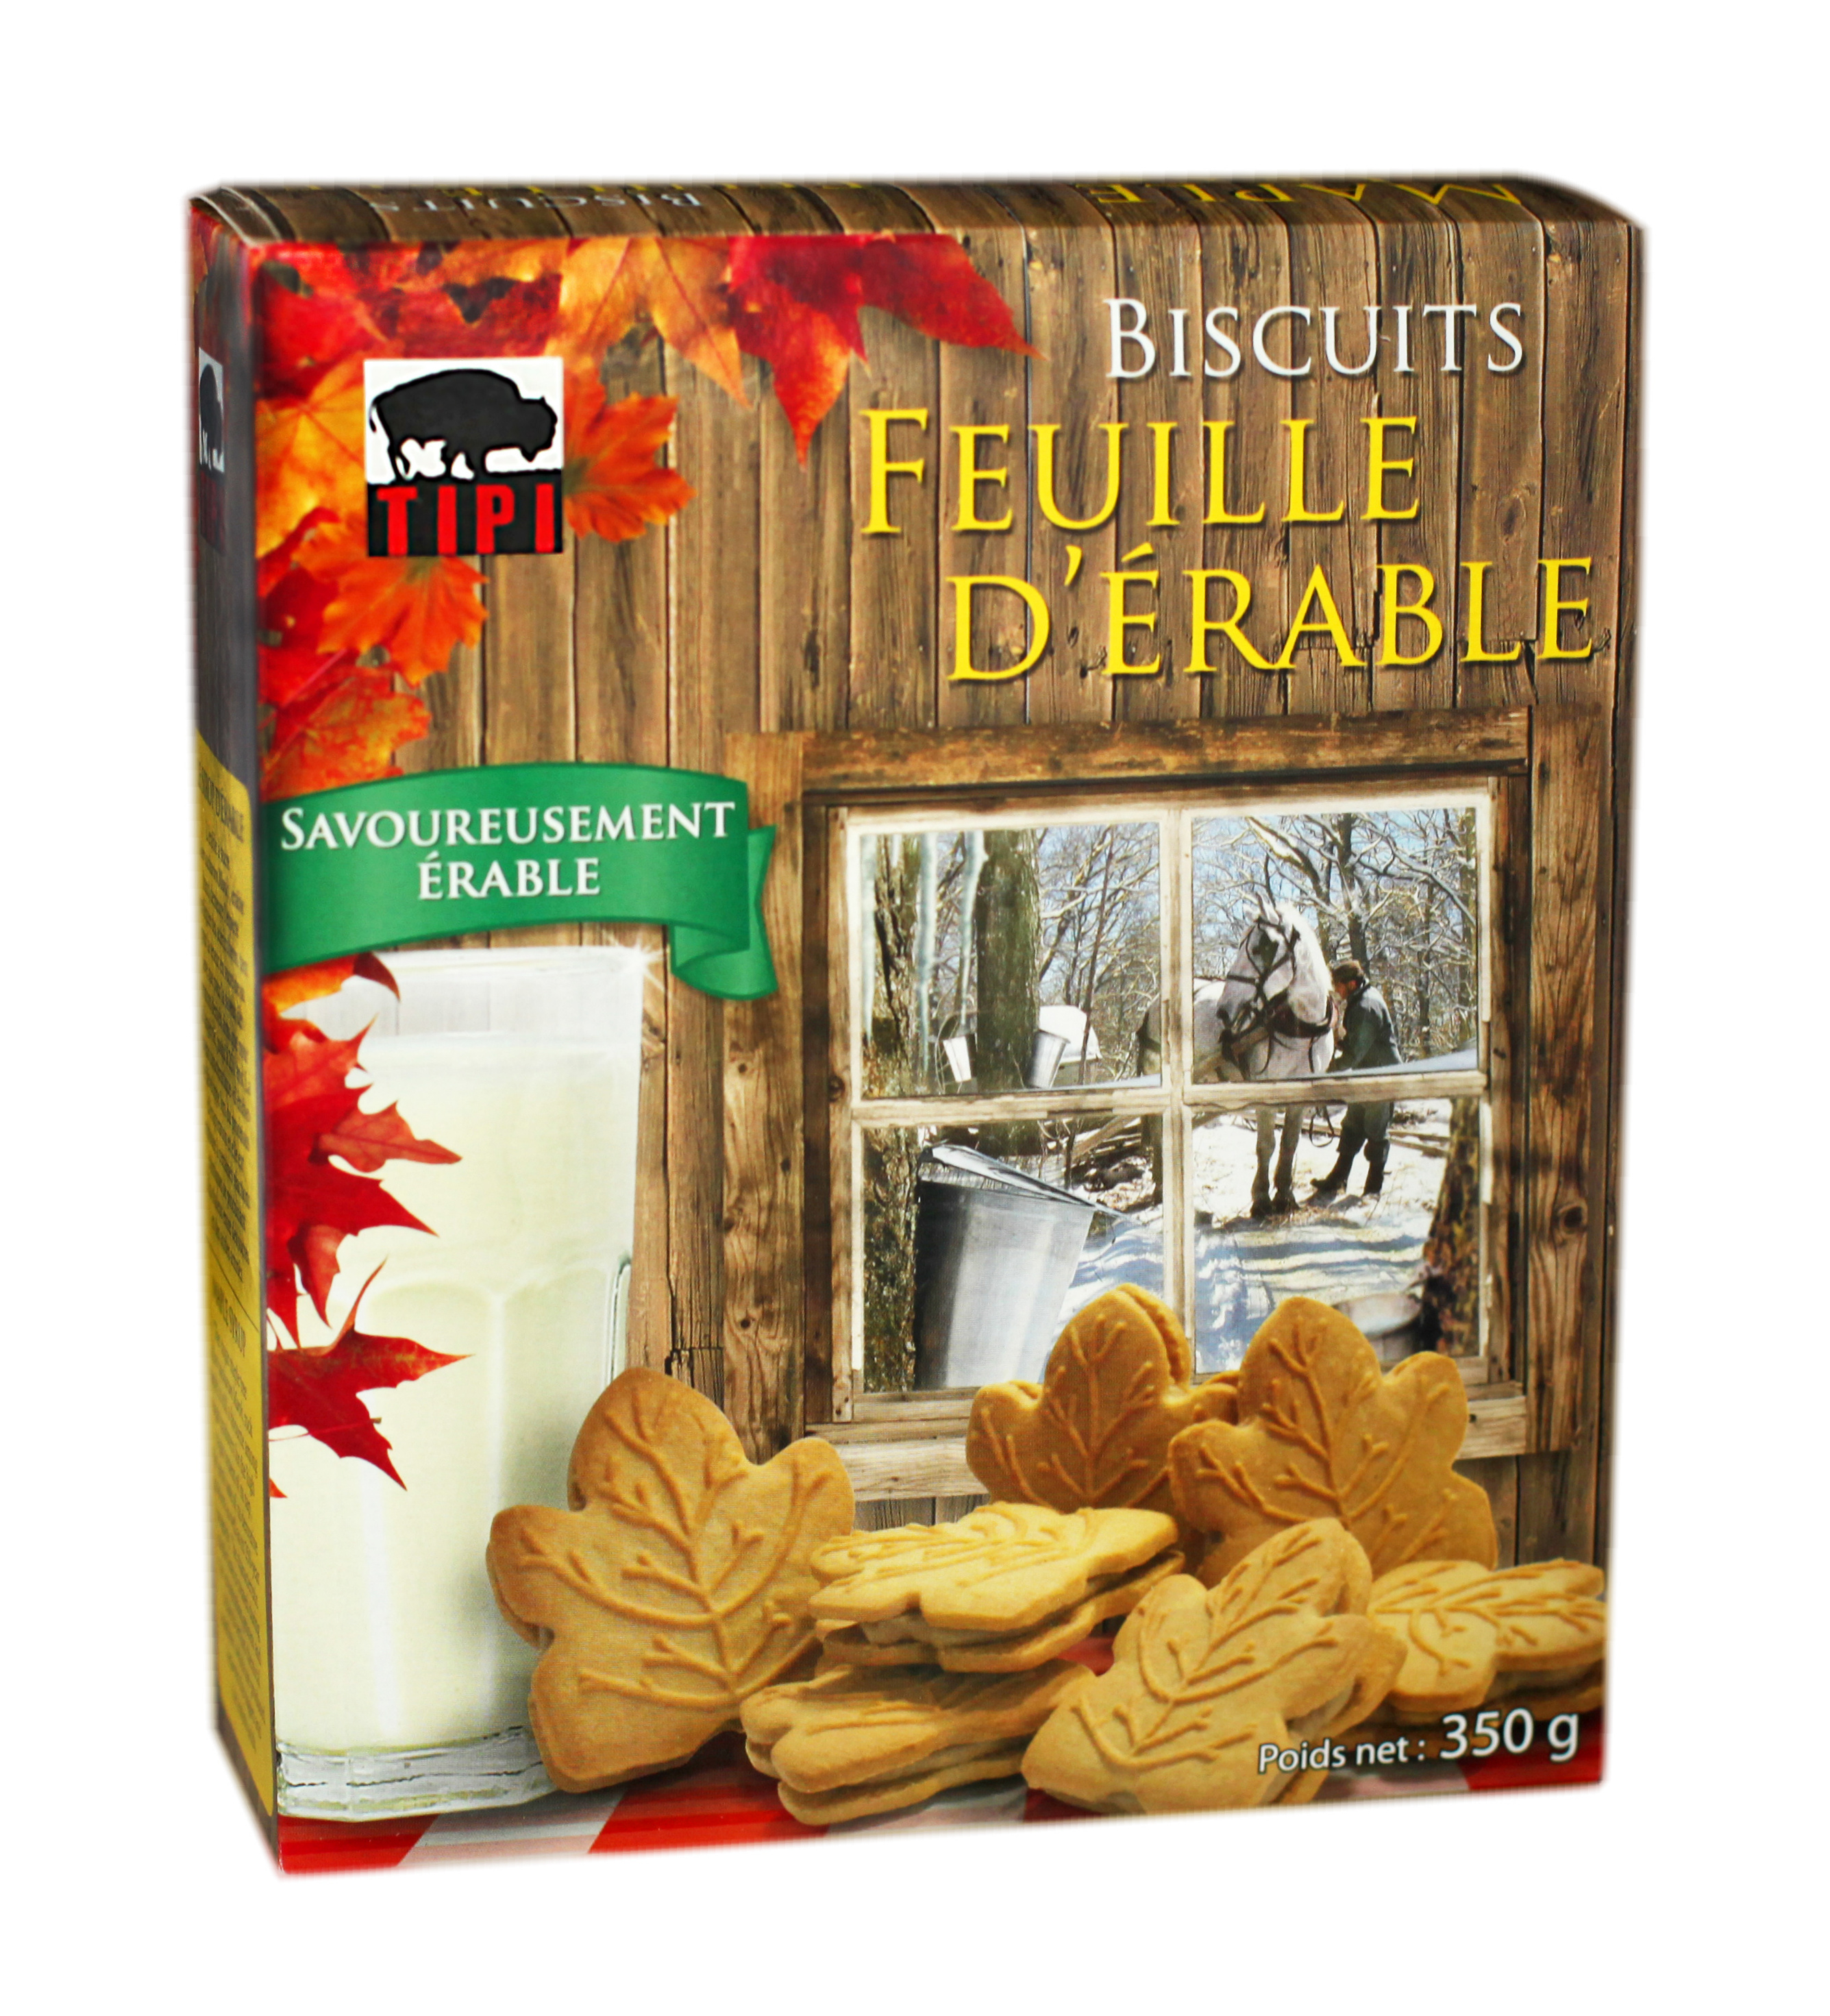 Biscuits feuille d'érable